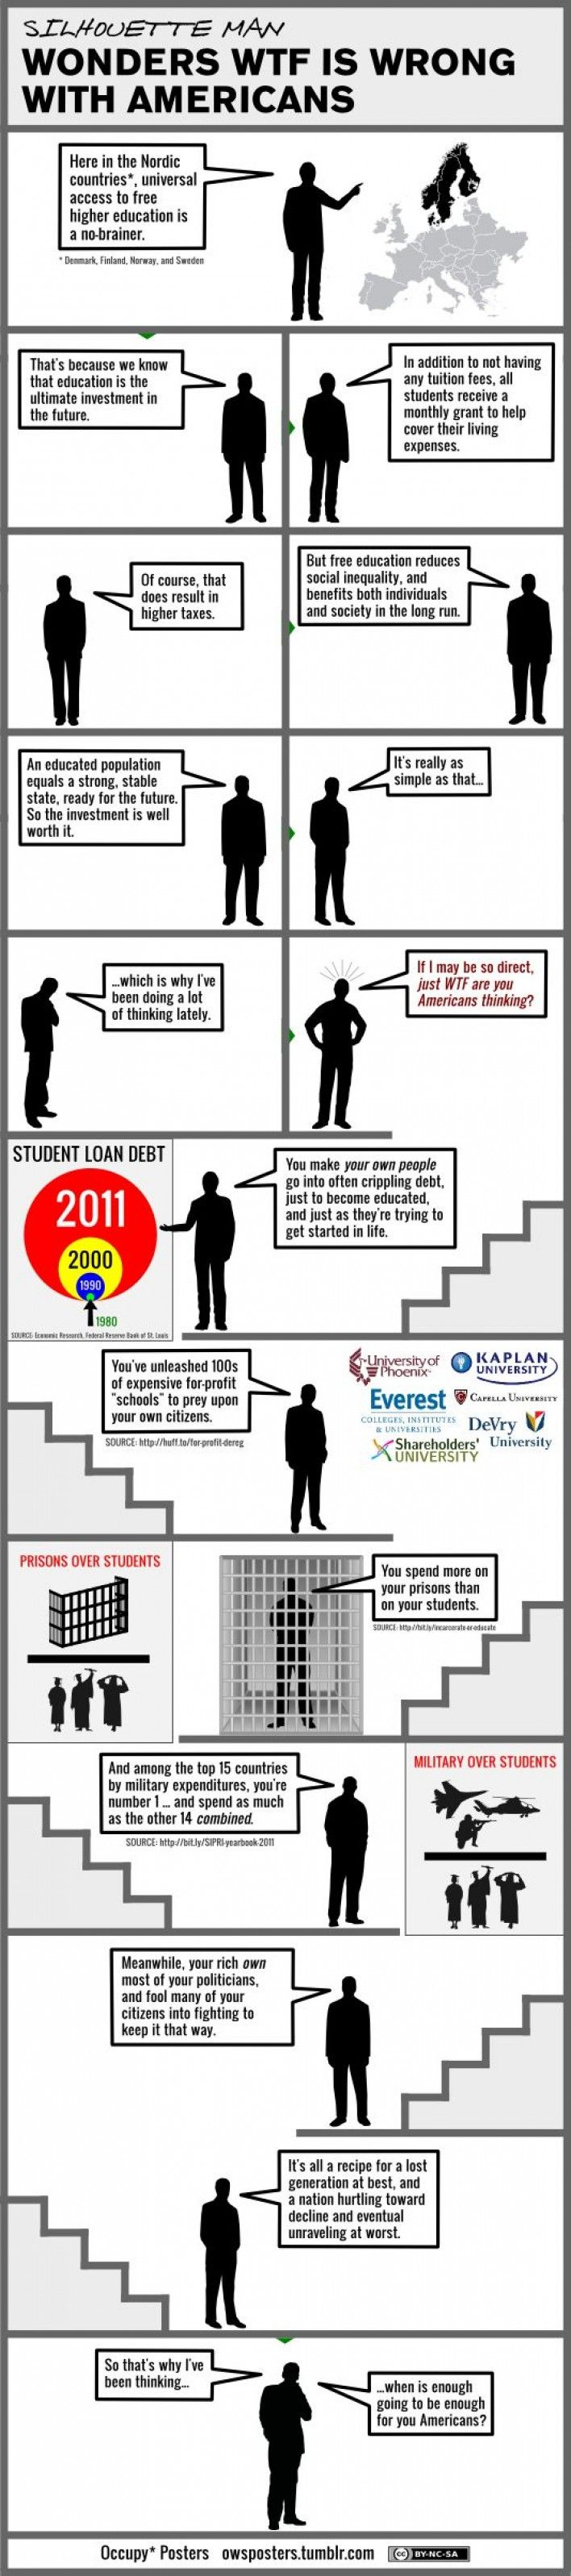 A good explanation of America's misplaced priorities in relation to education and student loans.